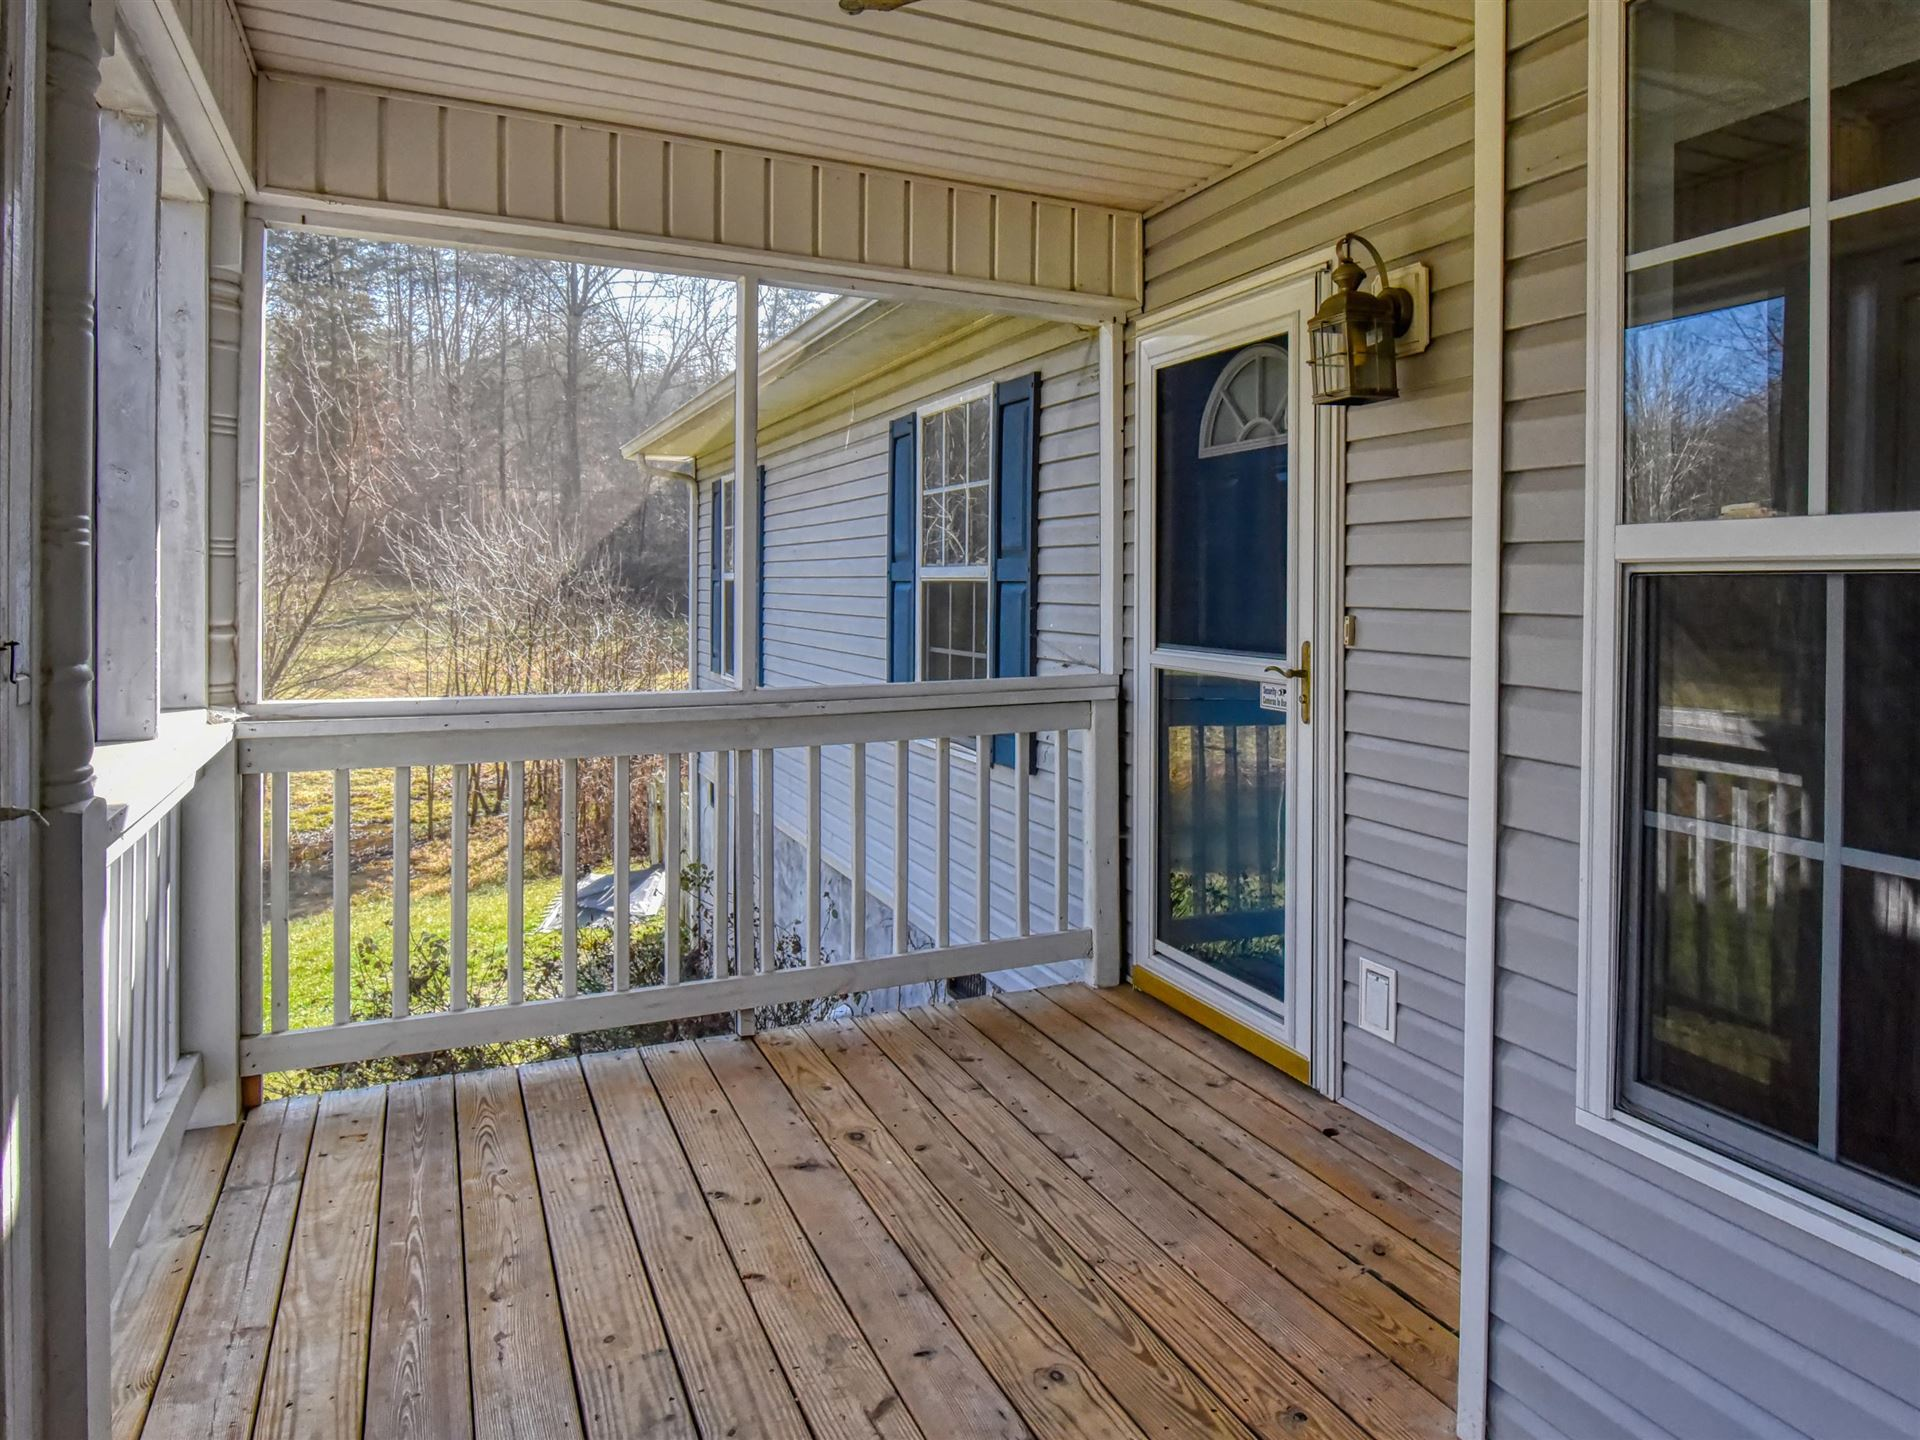 Photo of 6307 Quail Grove Lane, Knoxville, TN 37920 (MLS # 1140257)